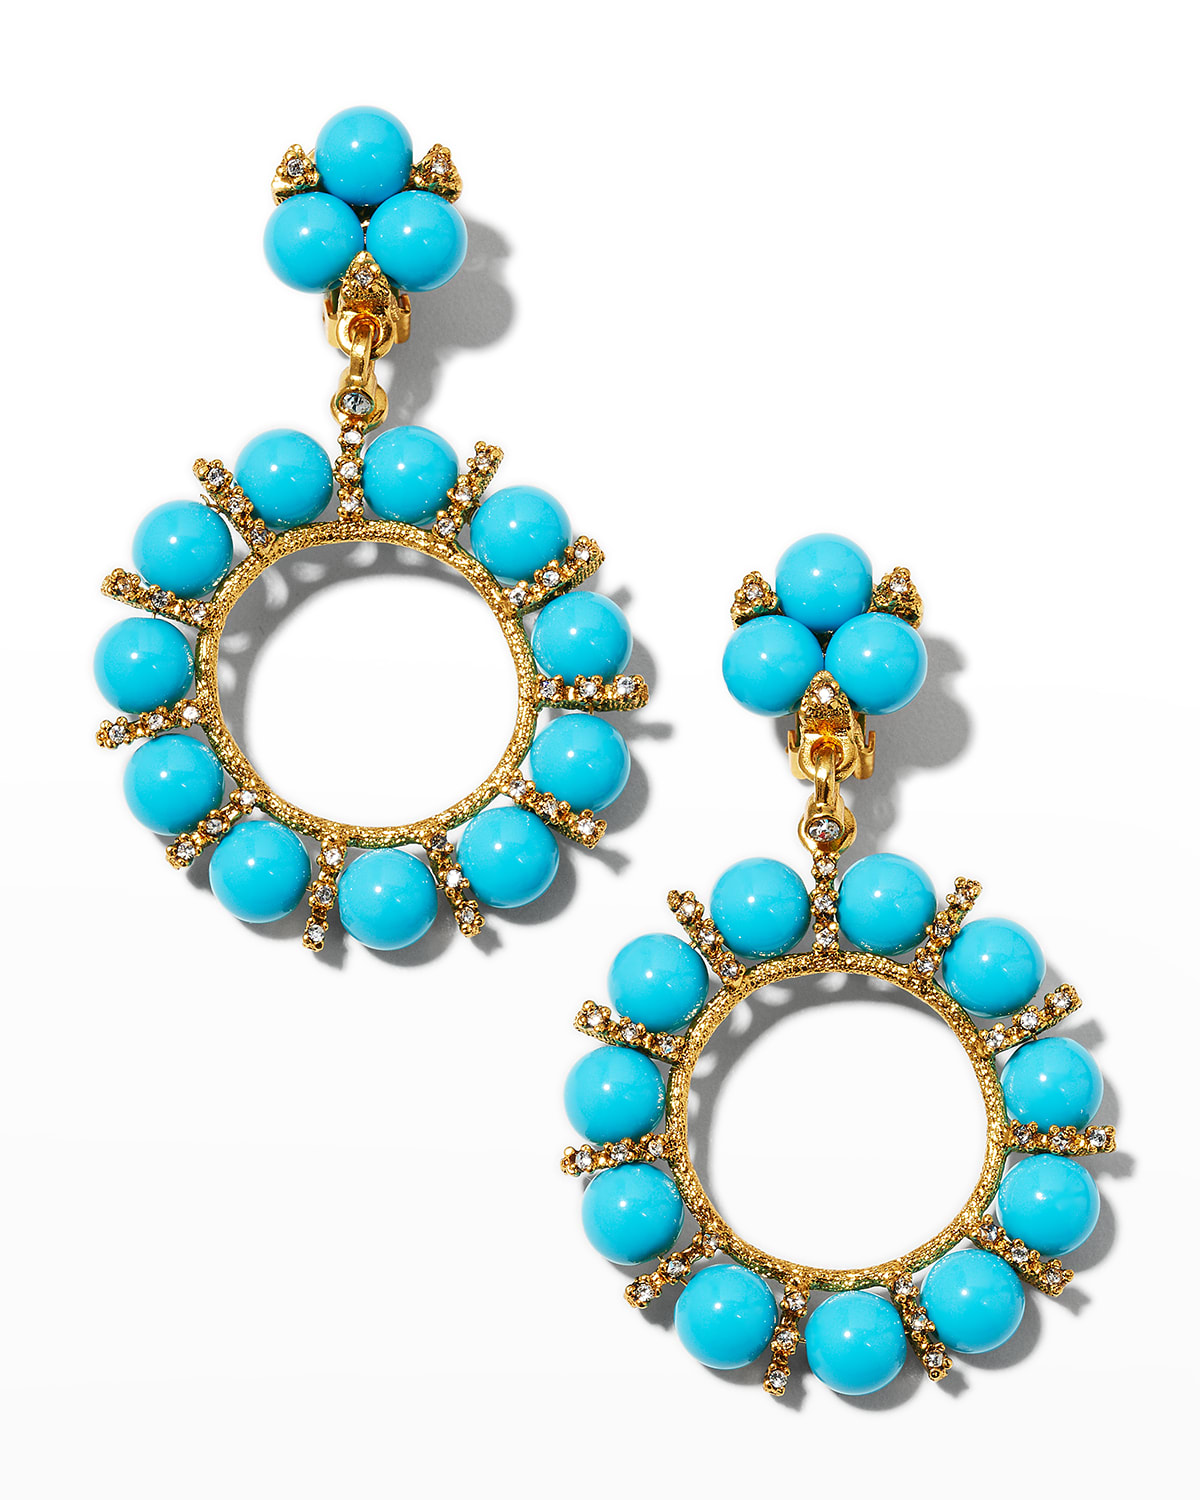 Light Antiqued Gold Rhinestone Clip Earrings with 10mm Turquoise Resin Balls